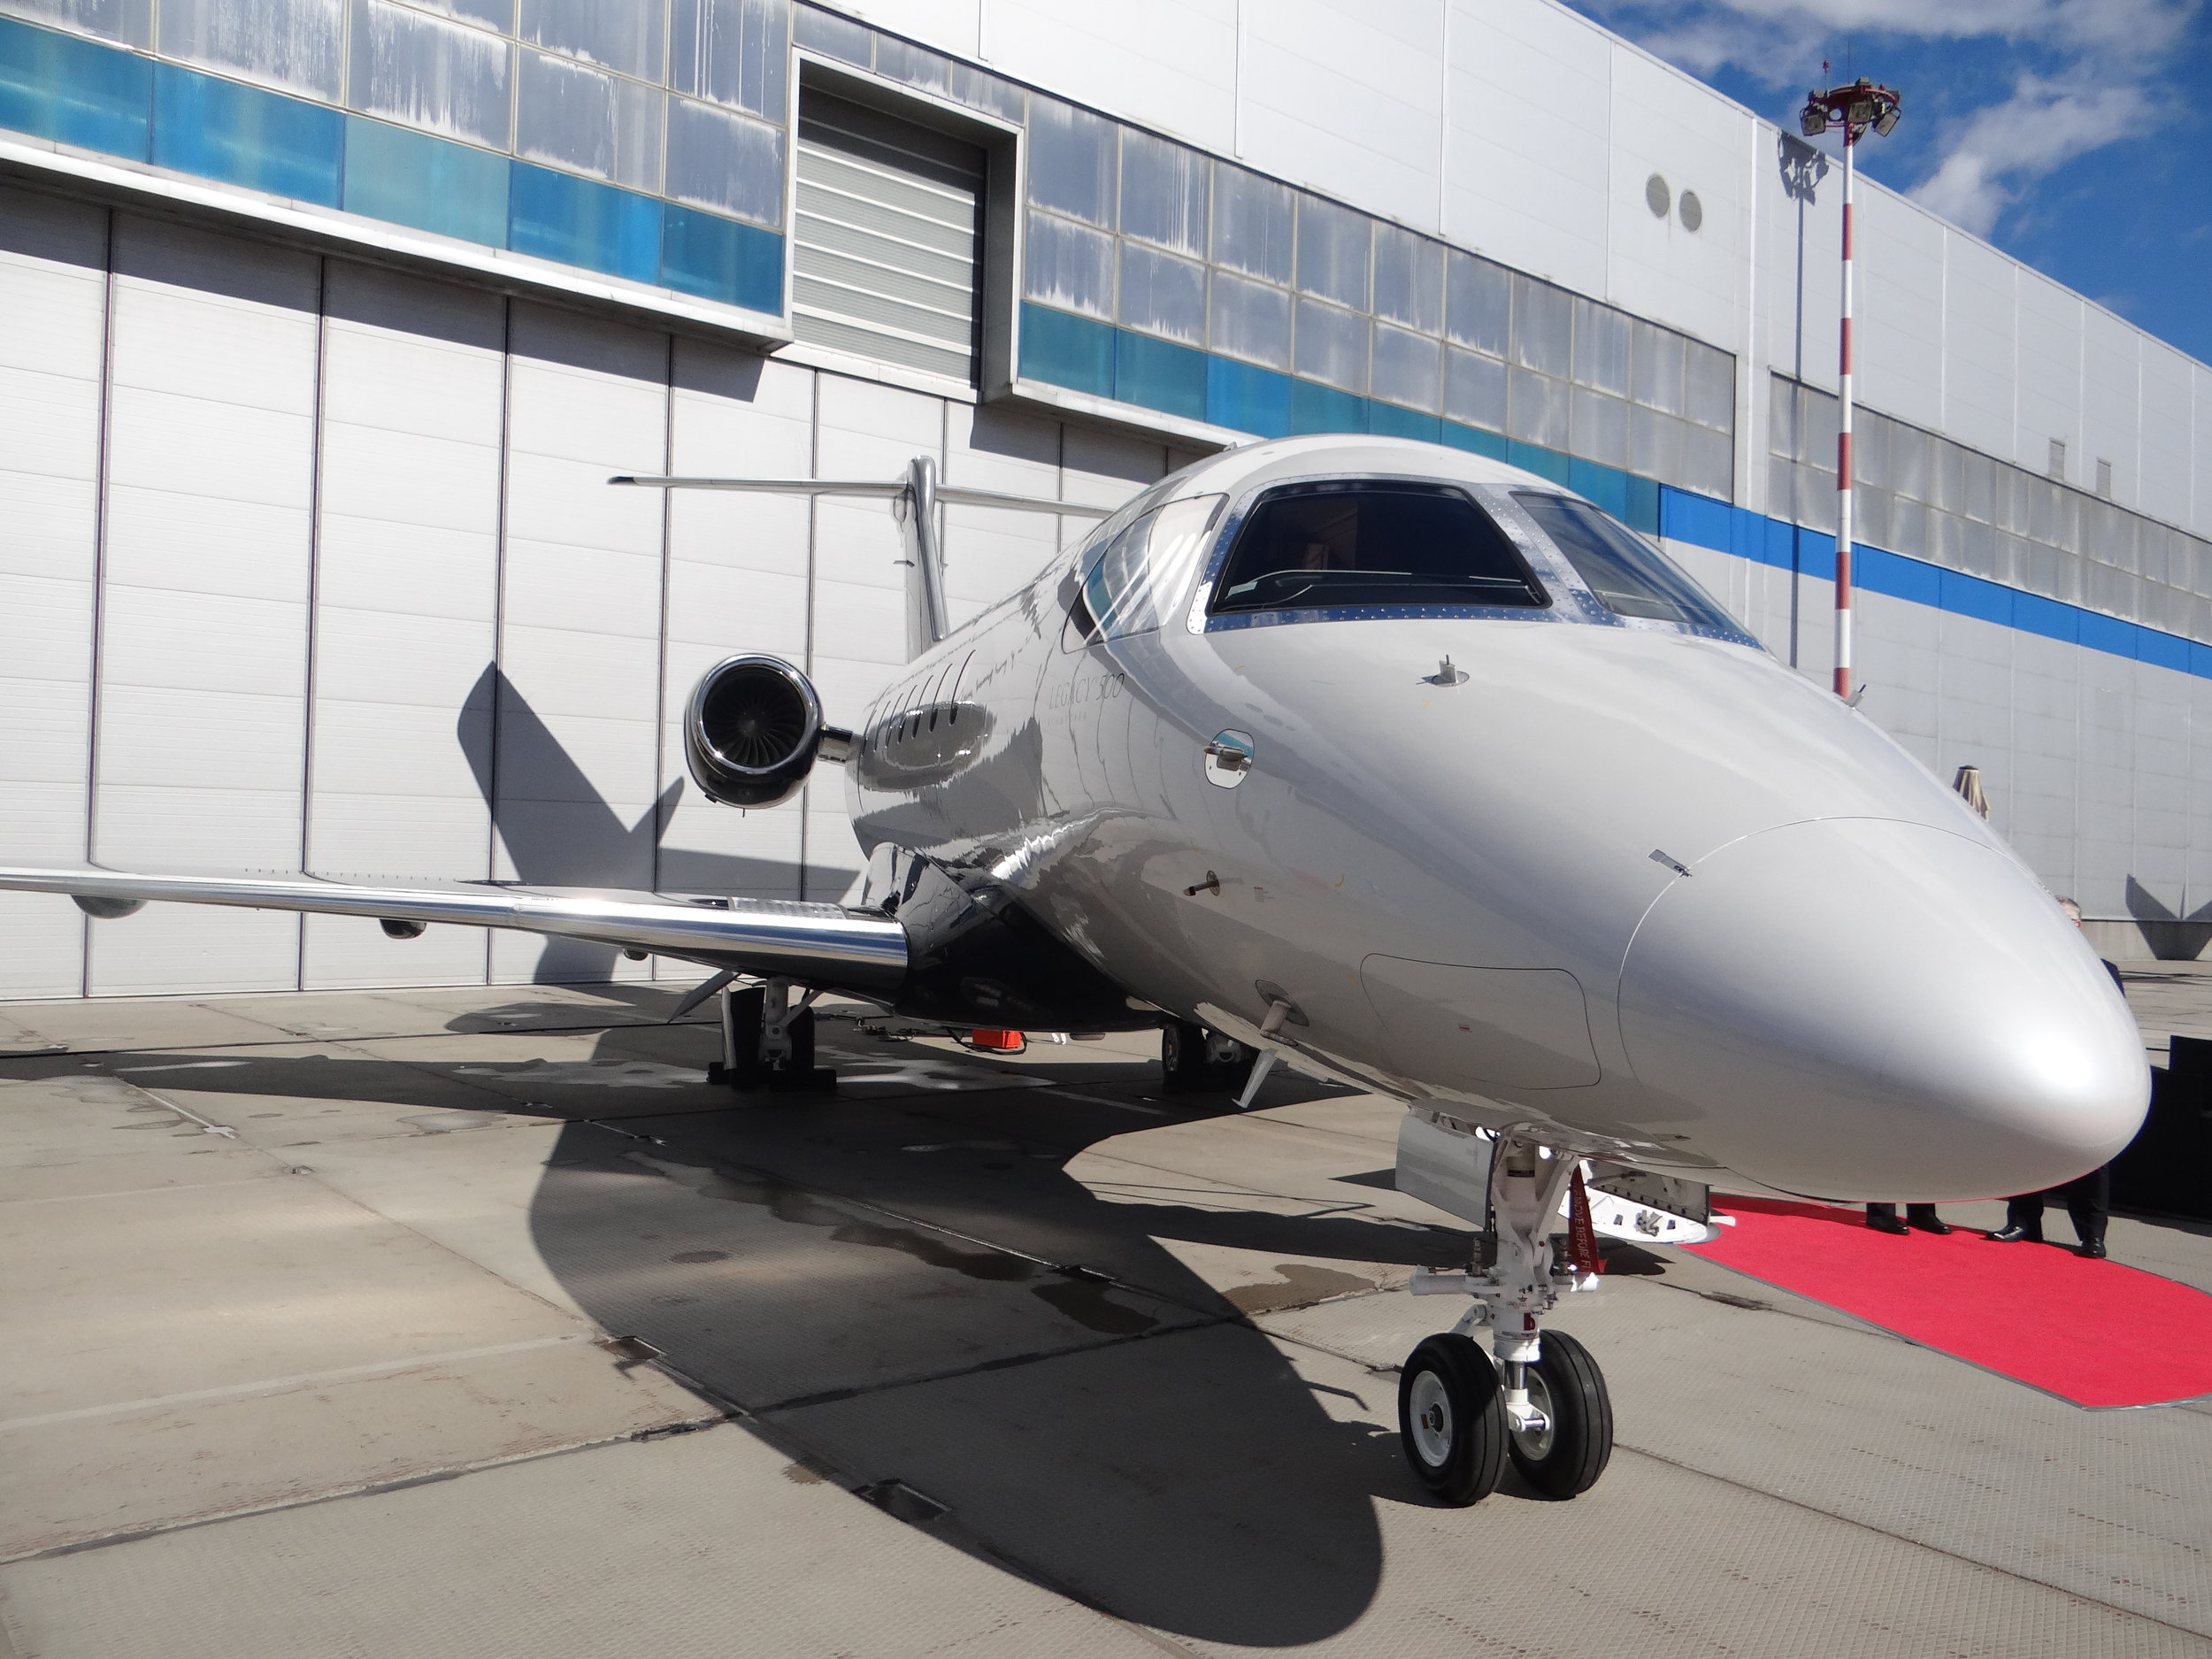 Other usual suspects at the show: Embraer brought its Phenom 300 and Phenom 100.